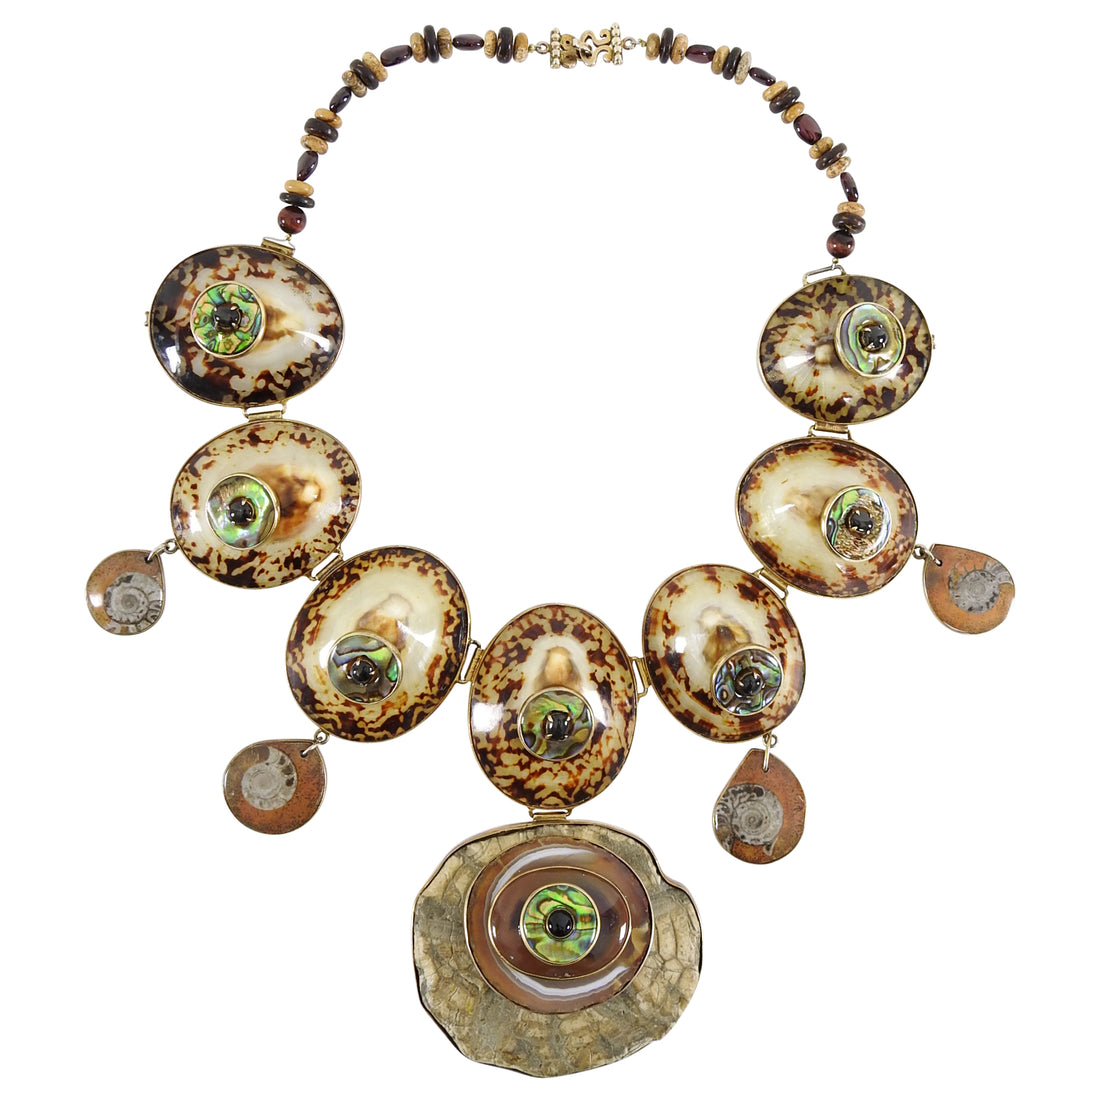 Tony Duquette 1999 Talisman Bib Necklace in Box - Ammonite and Shells